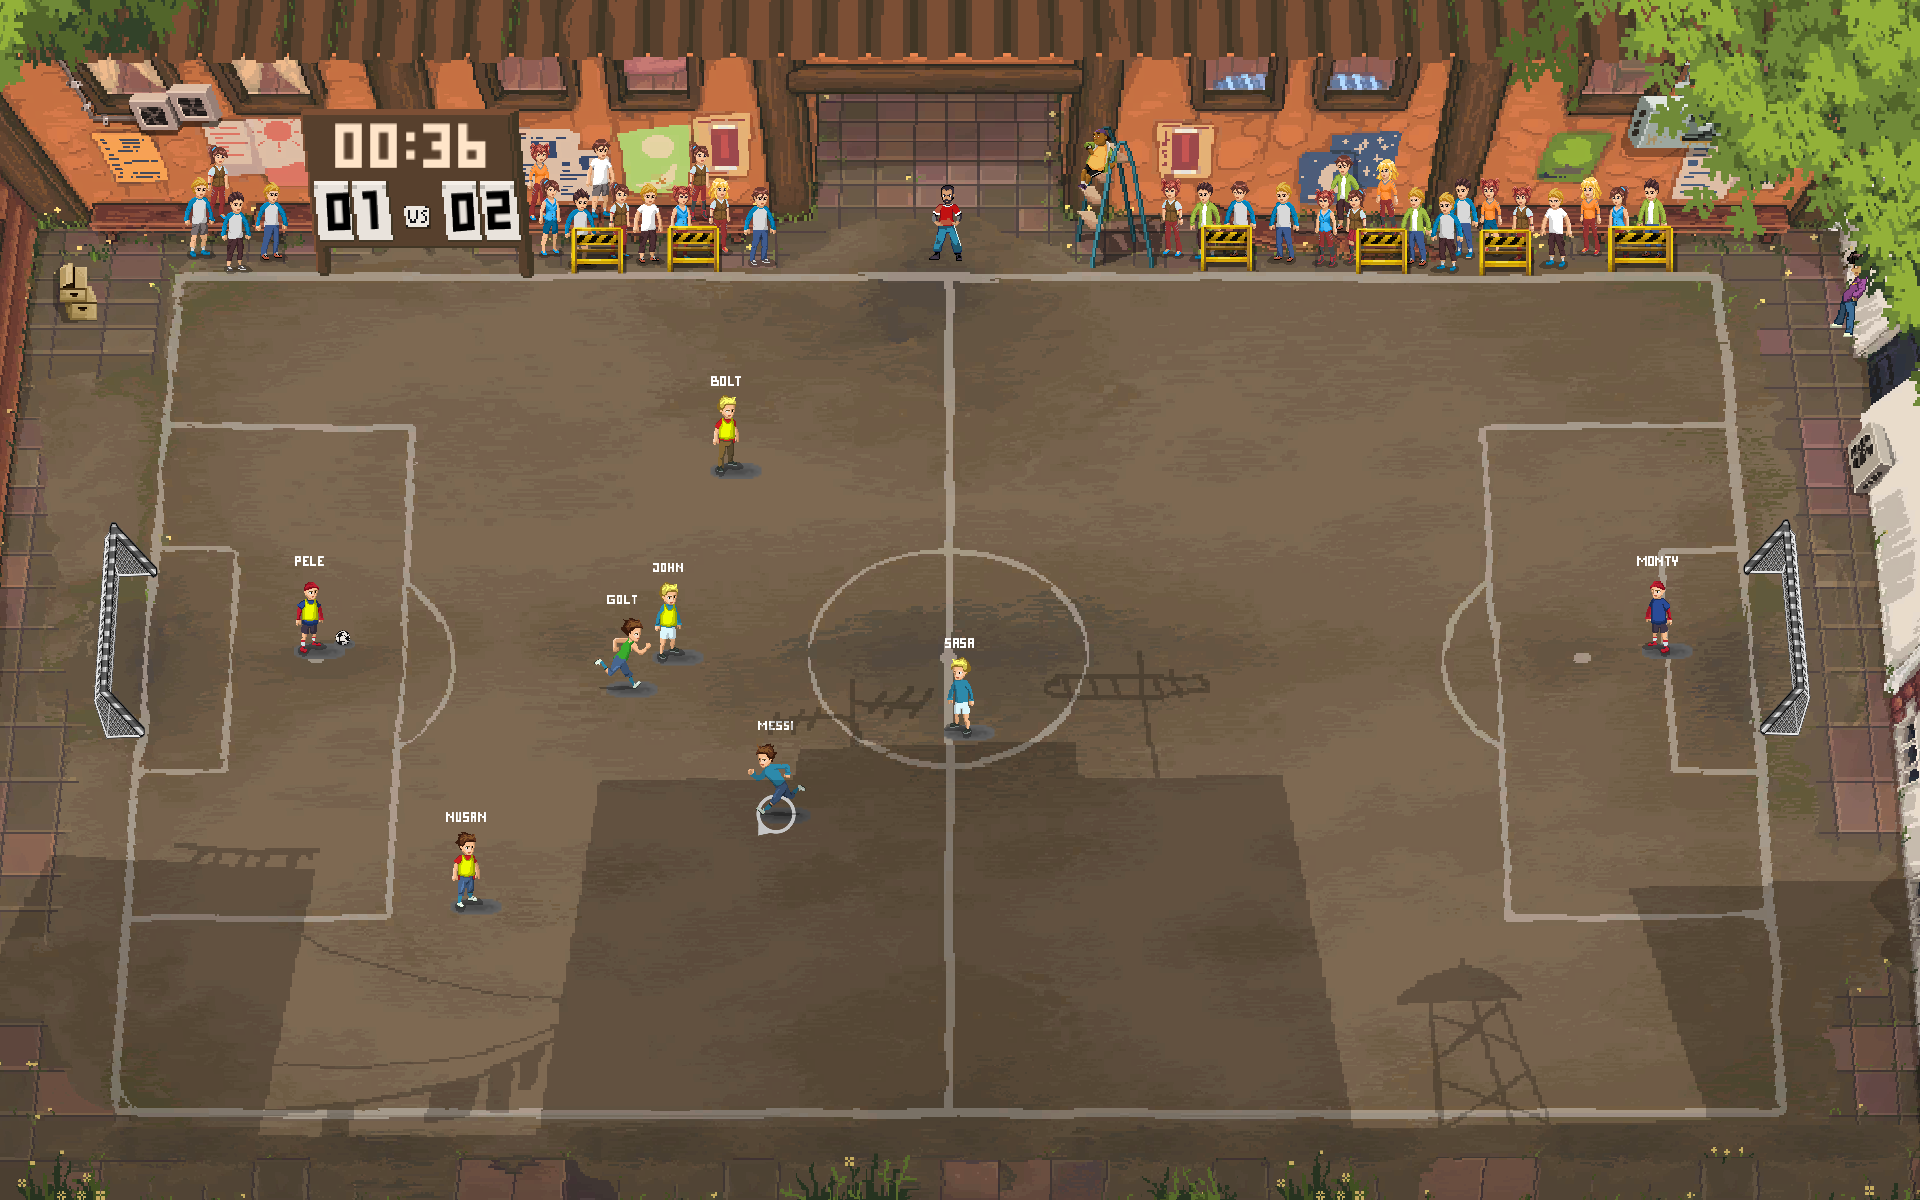 Football Story gameplay match screen